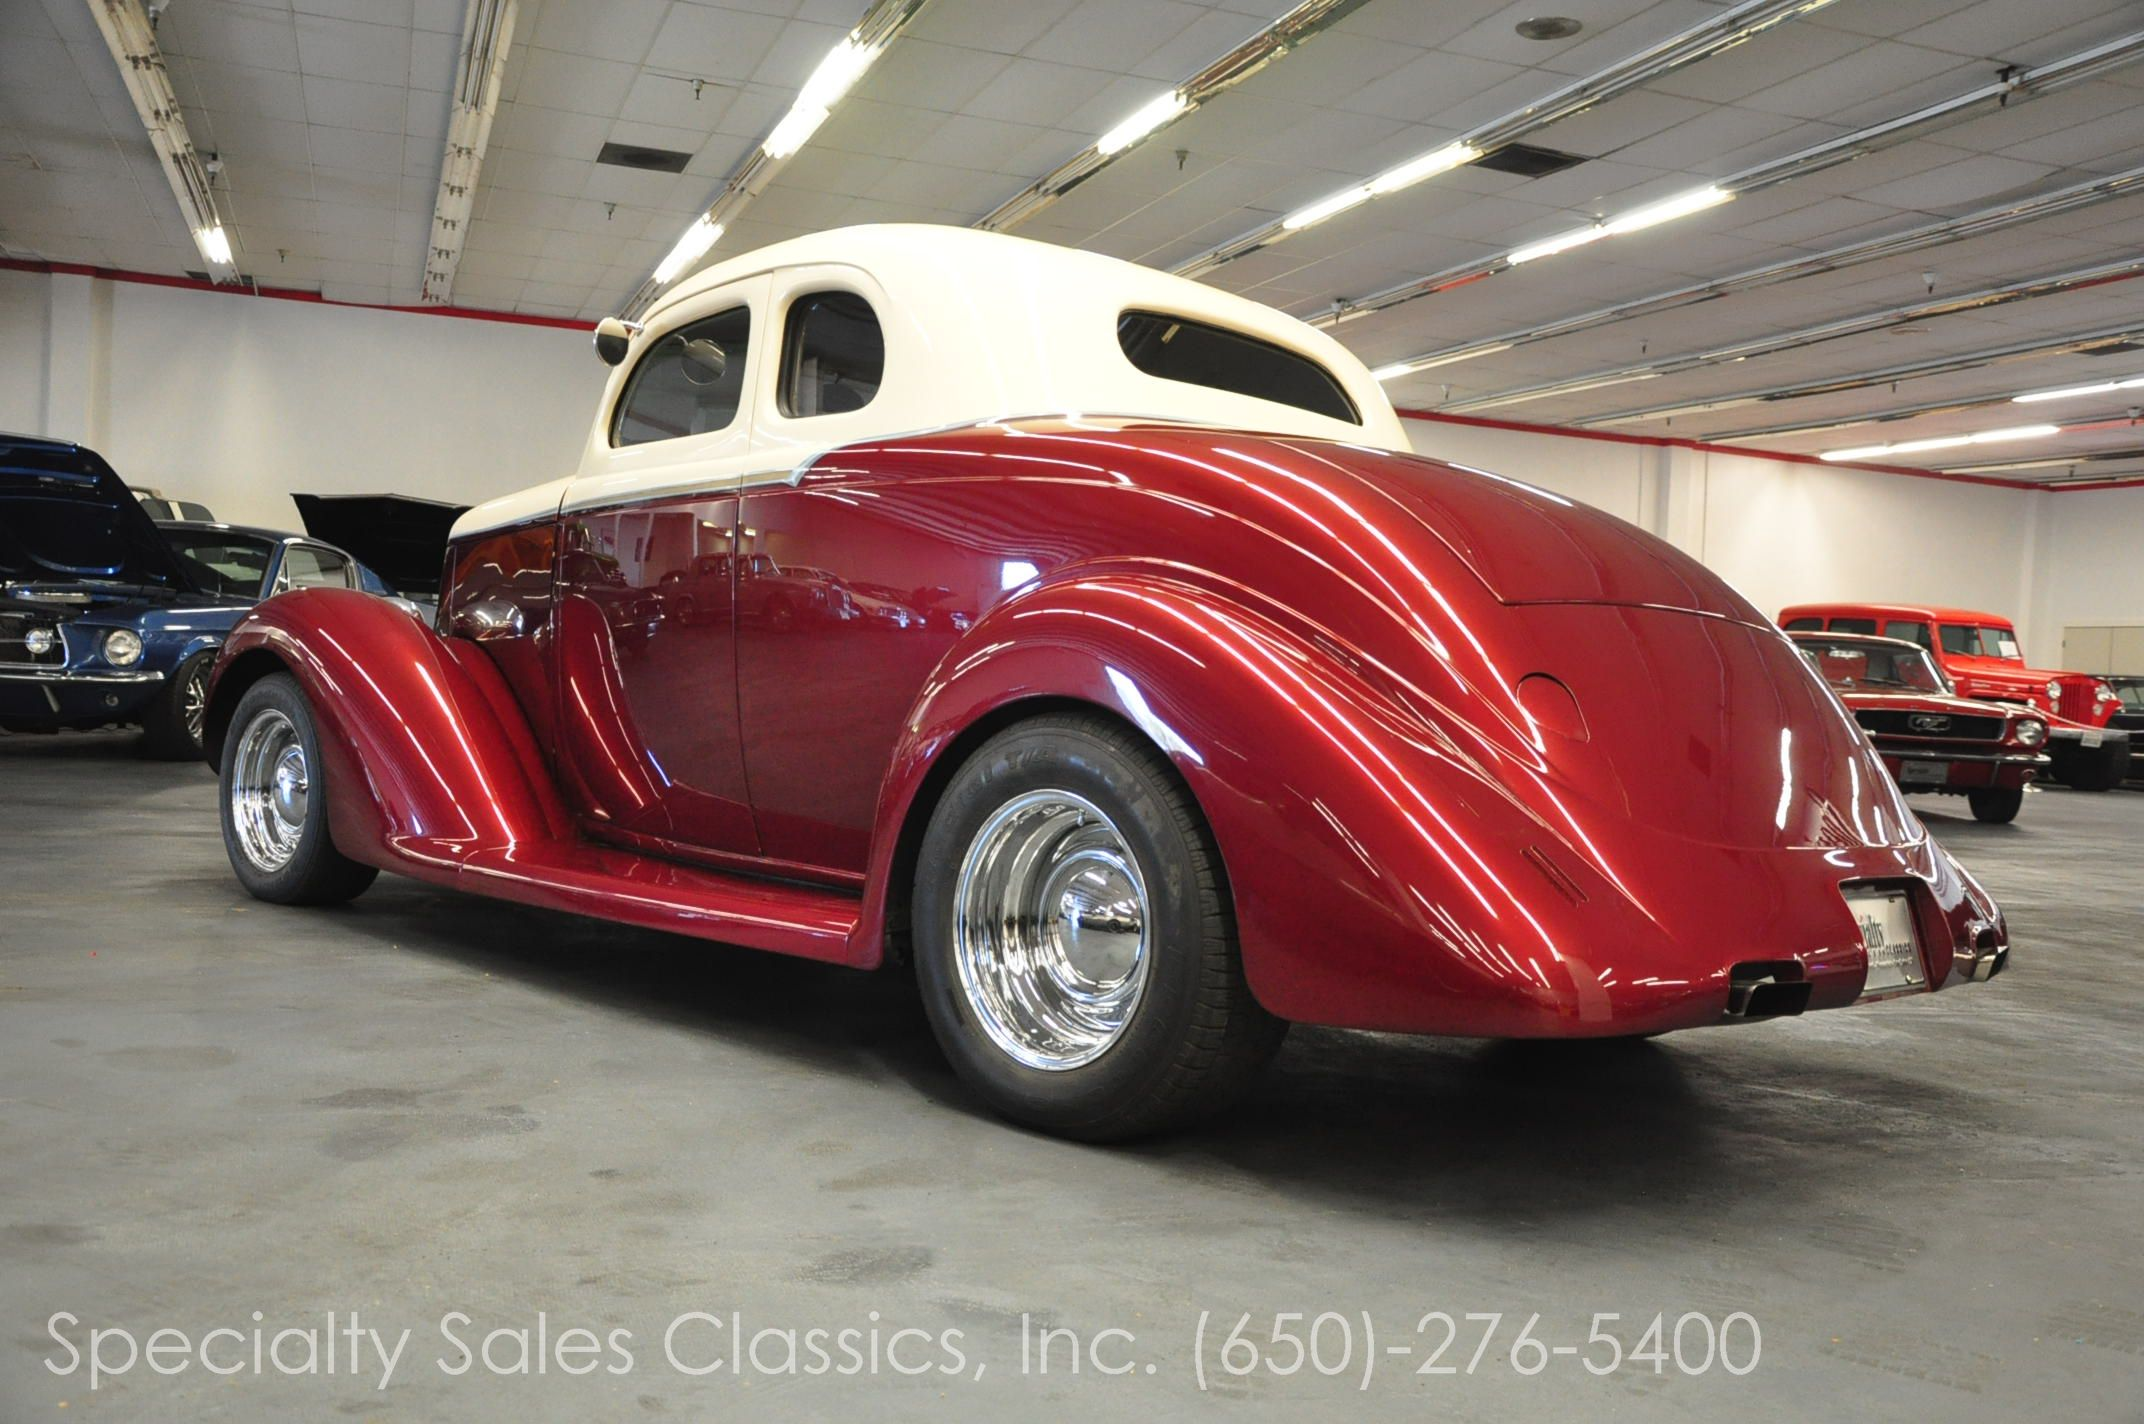 1935 Plymouth Coupe | 1935 Plymouth Deluxe - Fairfield 94533 - 17 ...